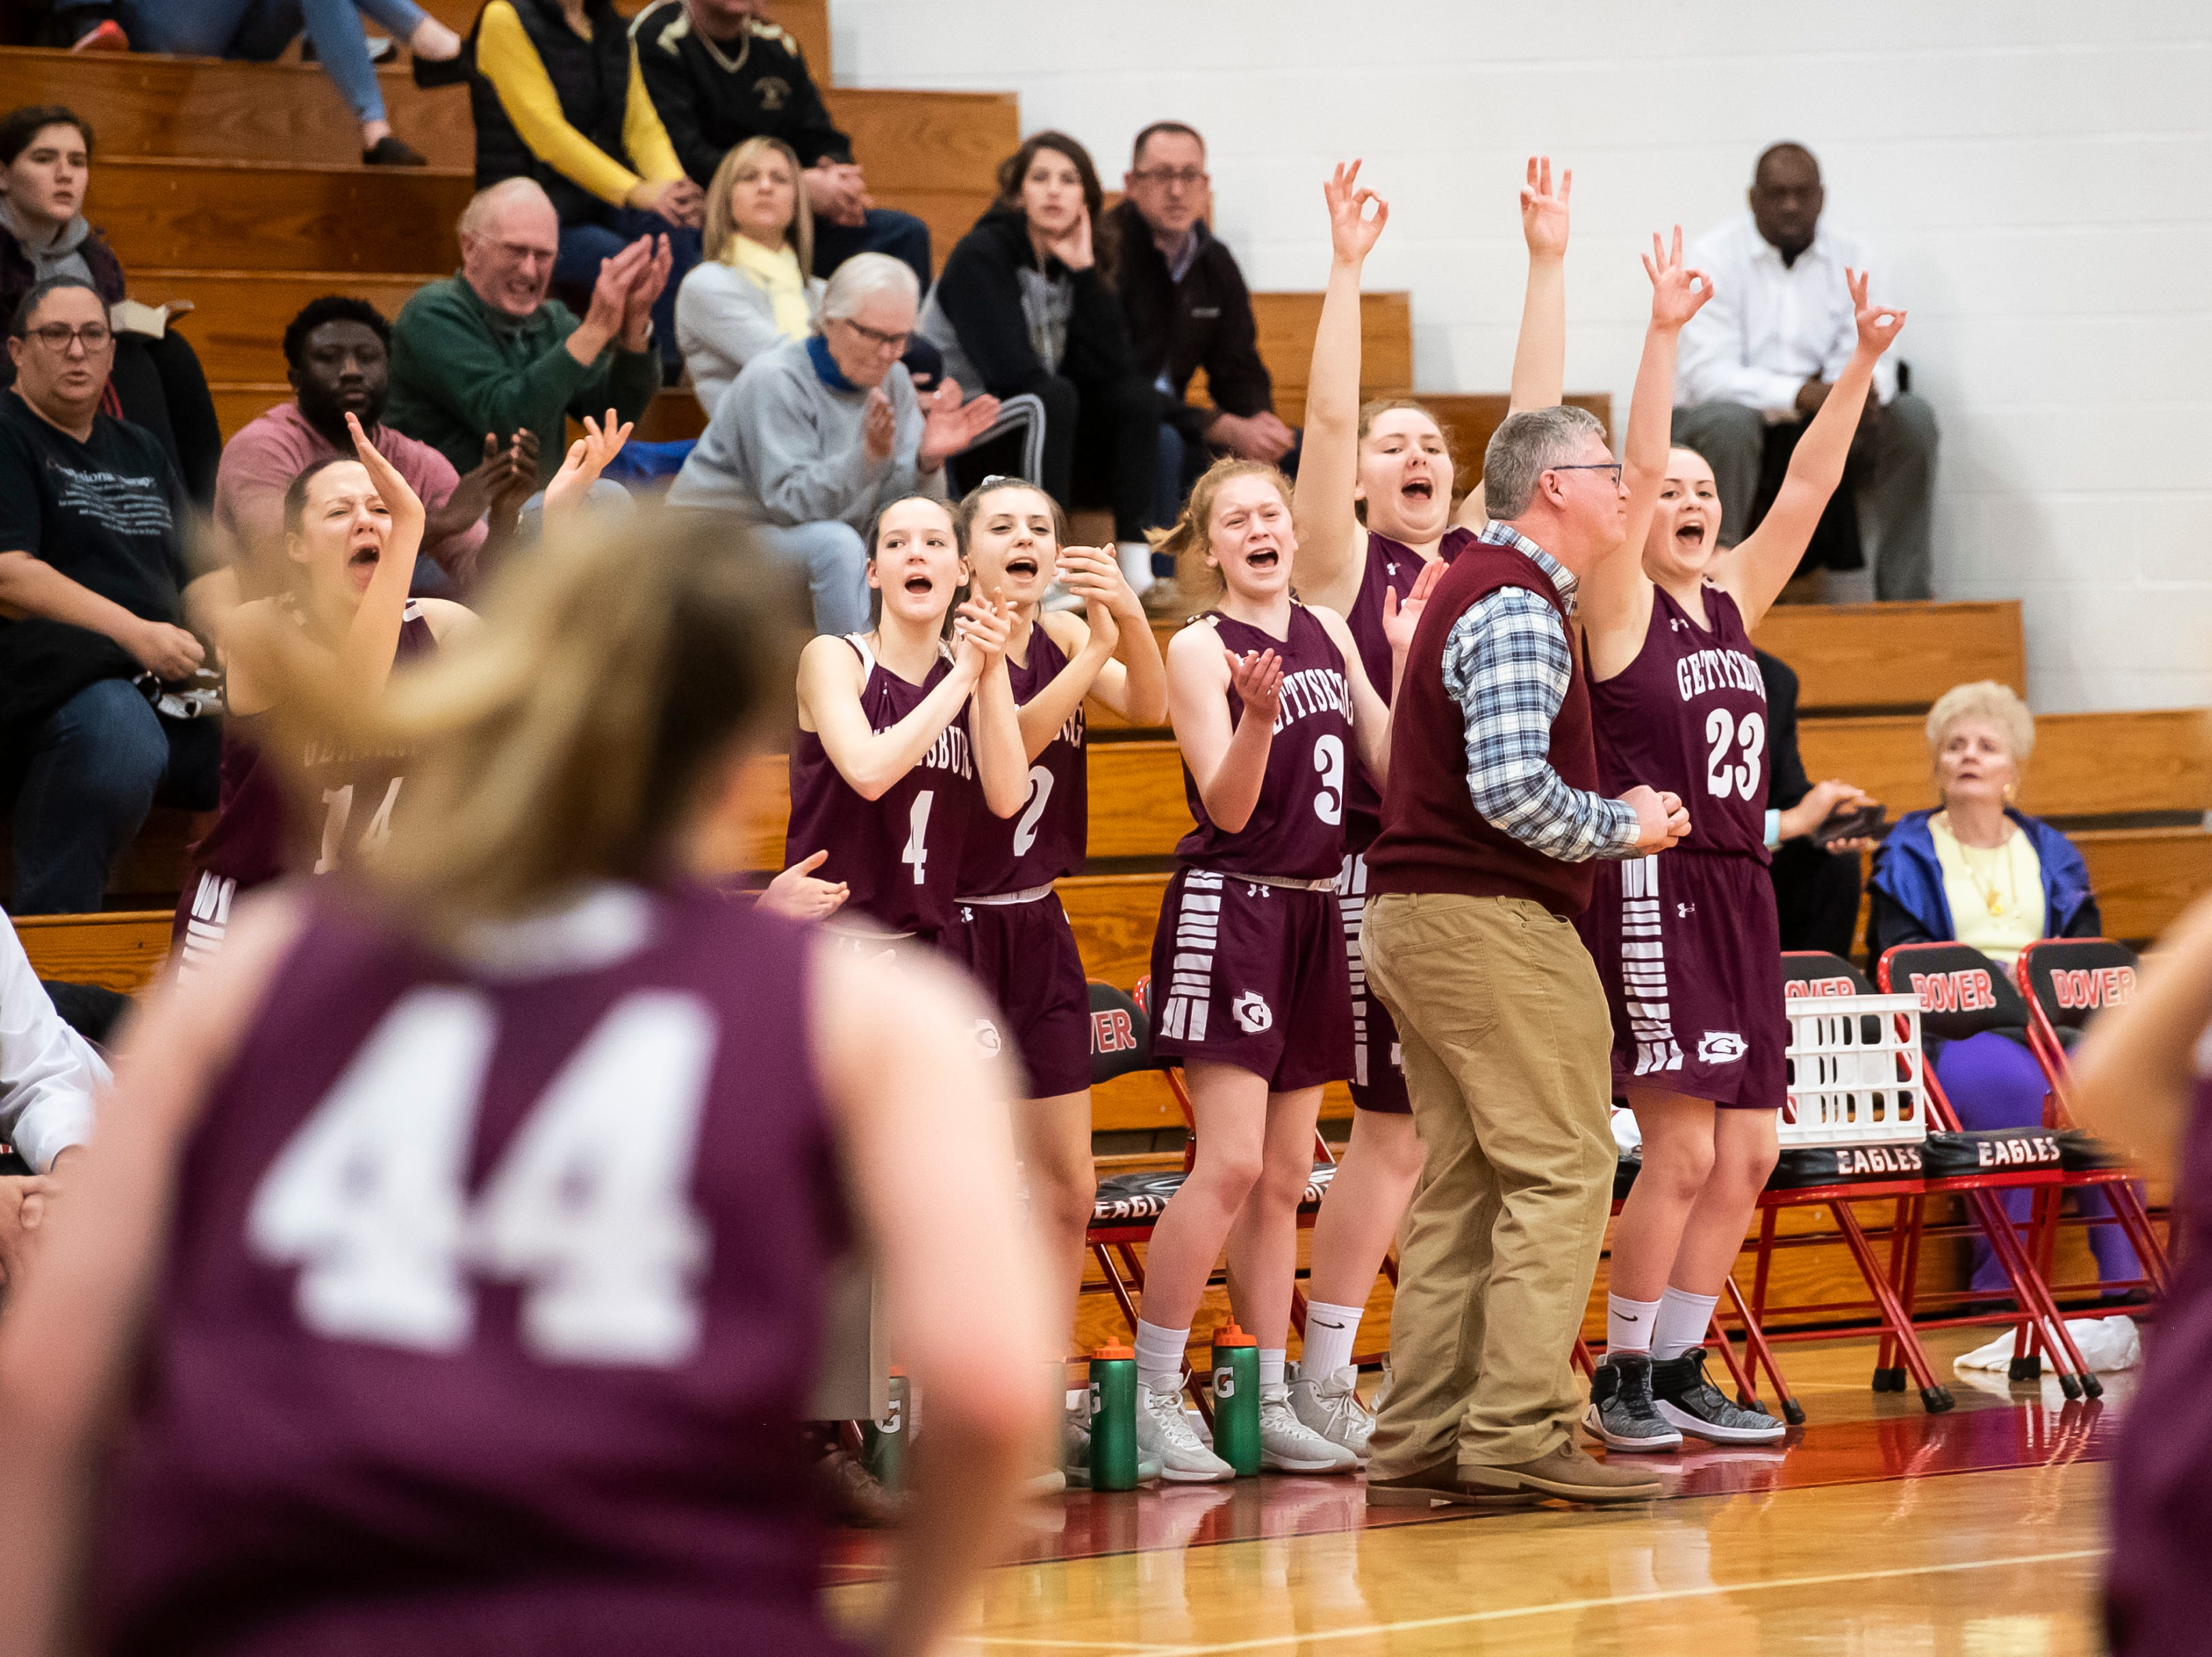 The Gettysburg bench reacts after Cheyenne Proctor scores on a 3-pointer during play against Delone Catholic in a YAIAA quarterfinal game at Dover High School Friday, February 8, 2019.